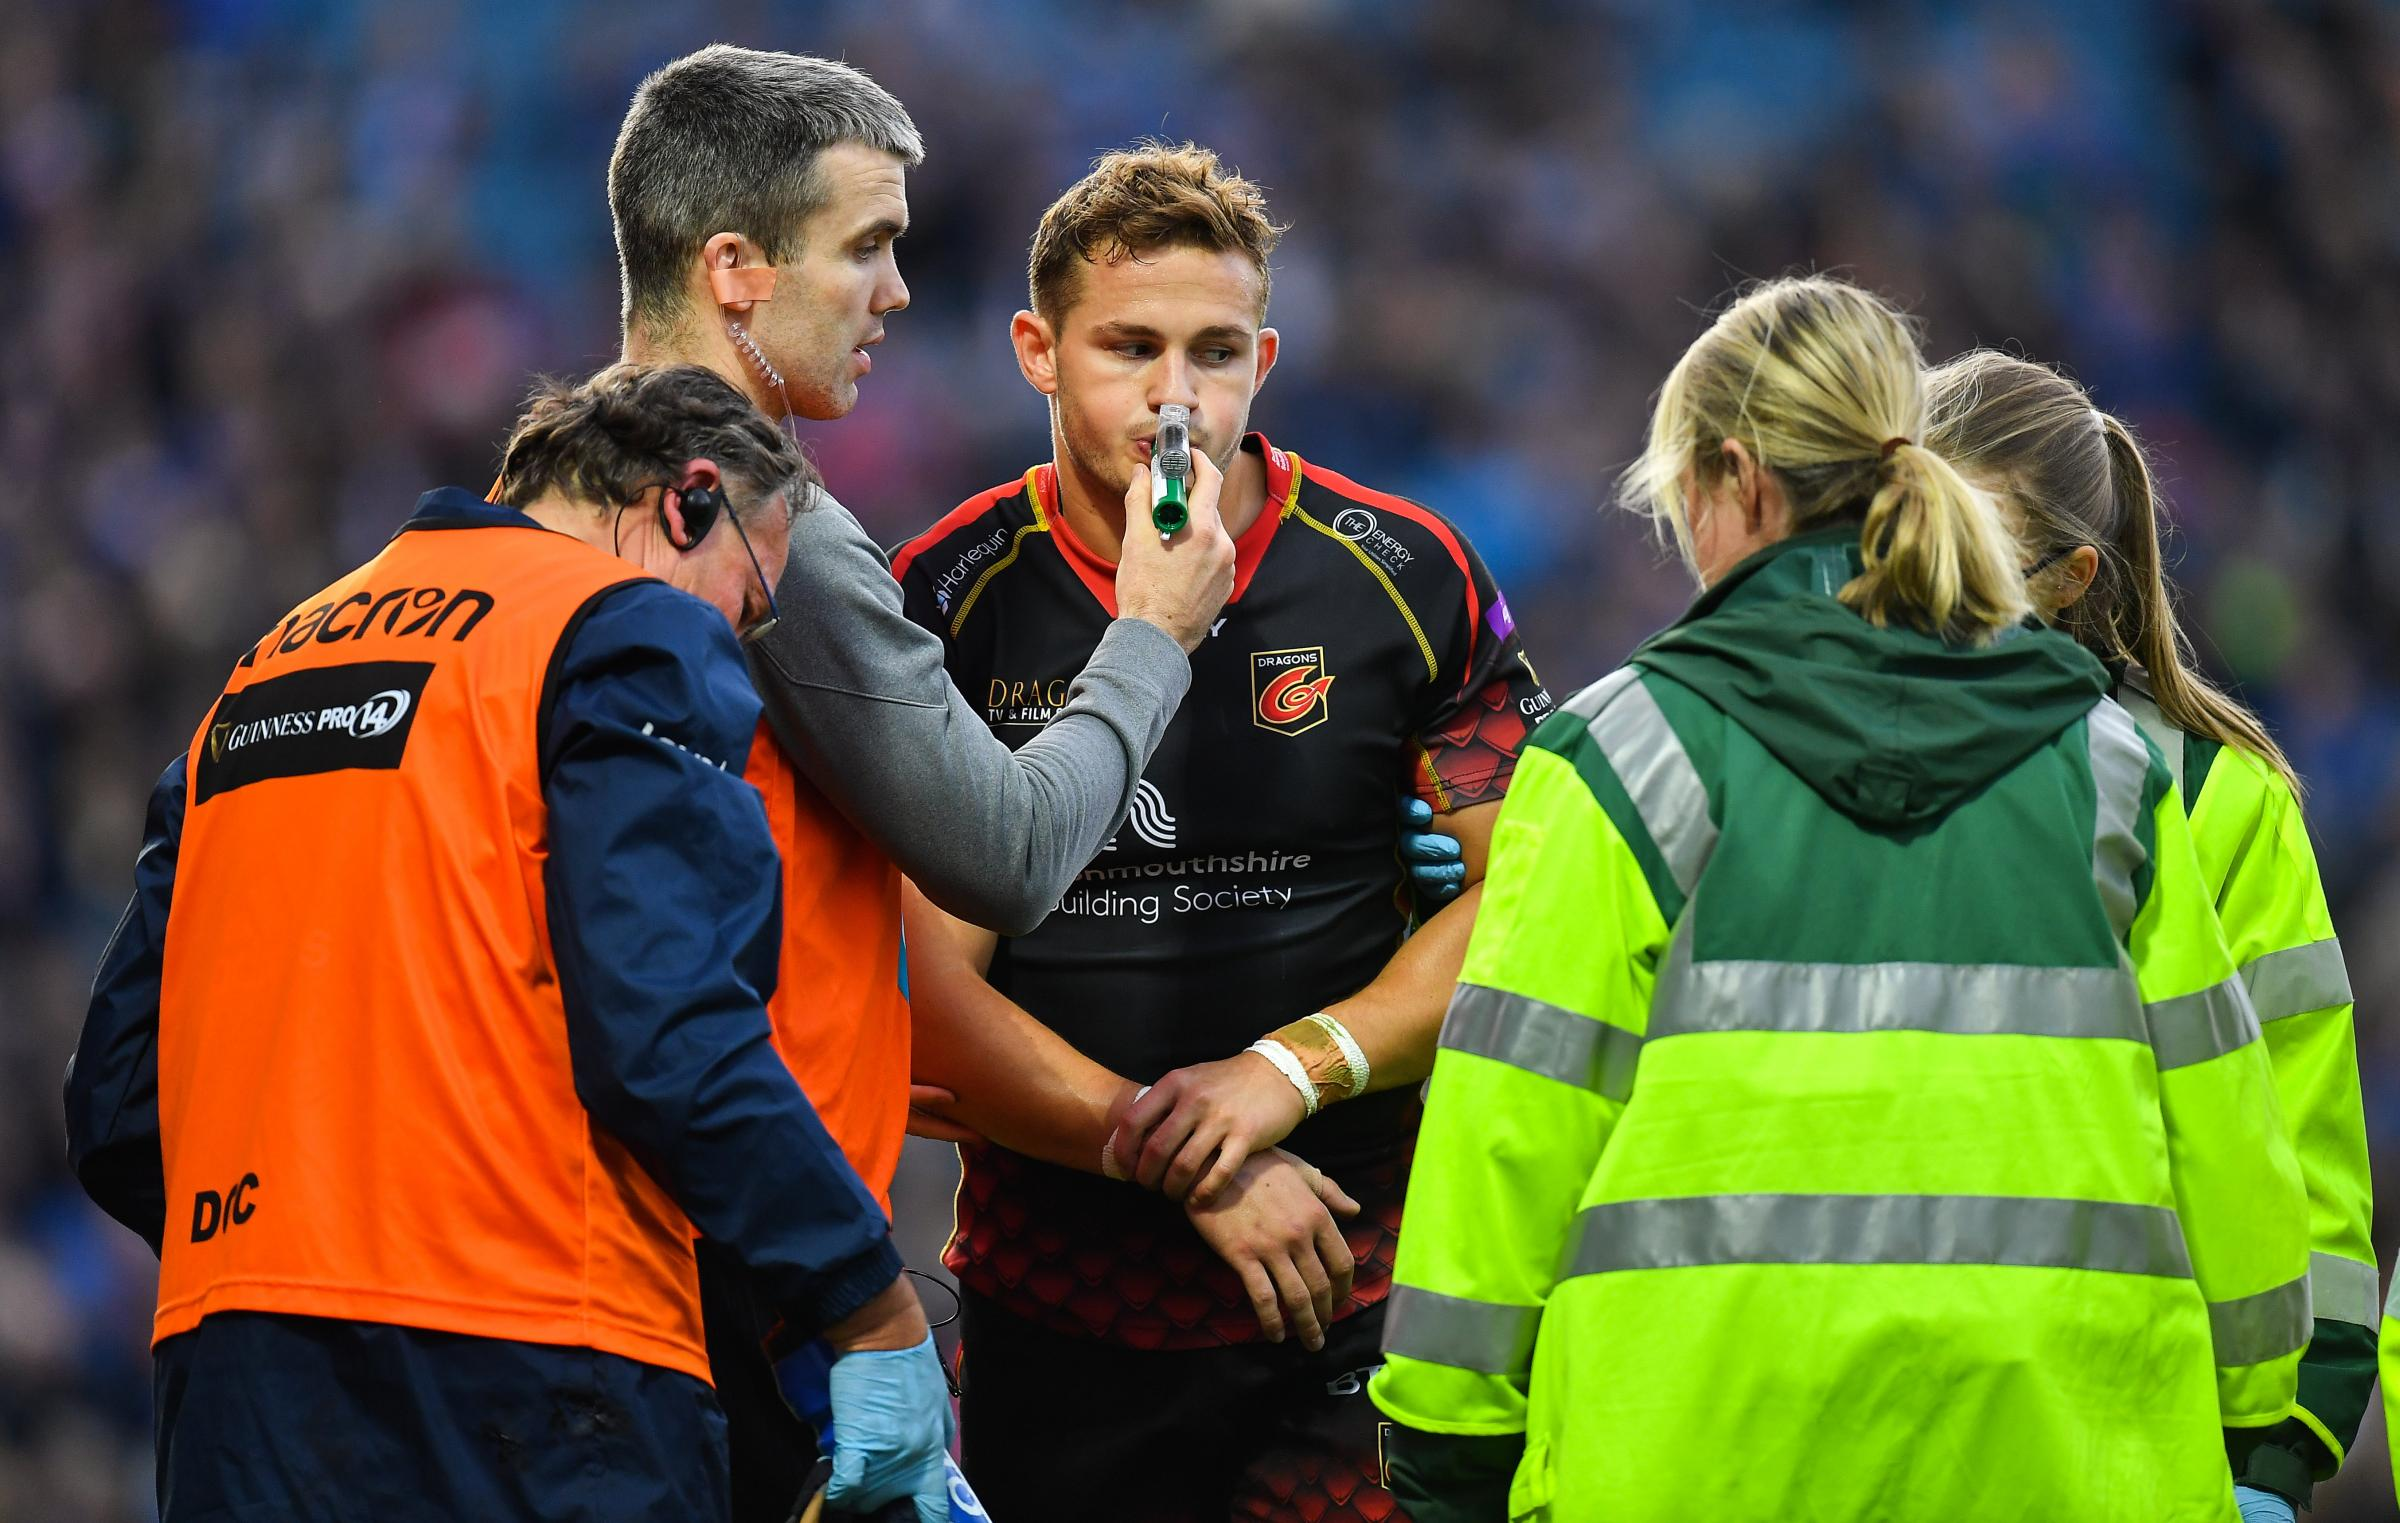 INJURY BLOW: Dragons wing Hallam Amos suffered a dislocated elbow at Leinster